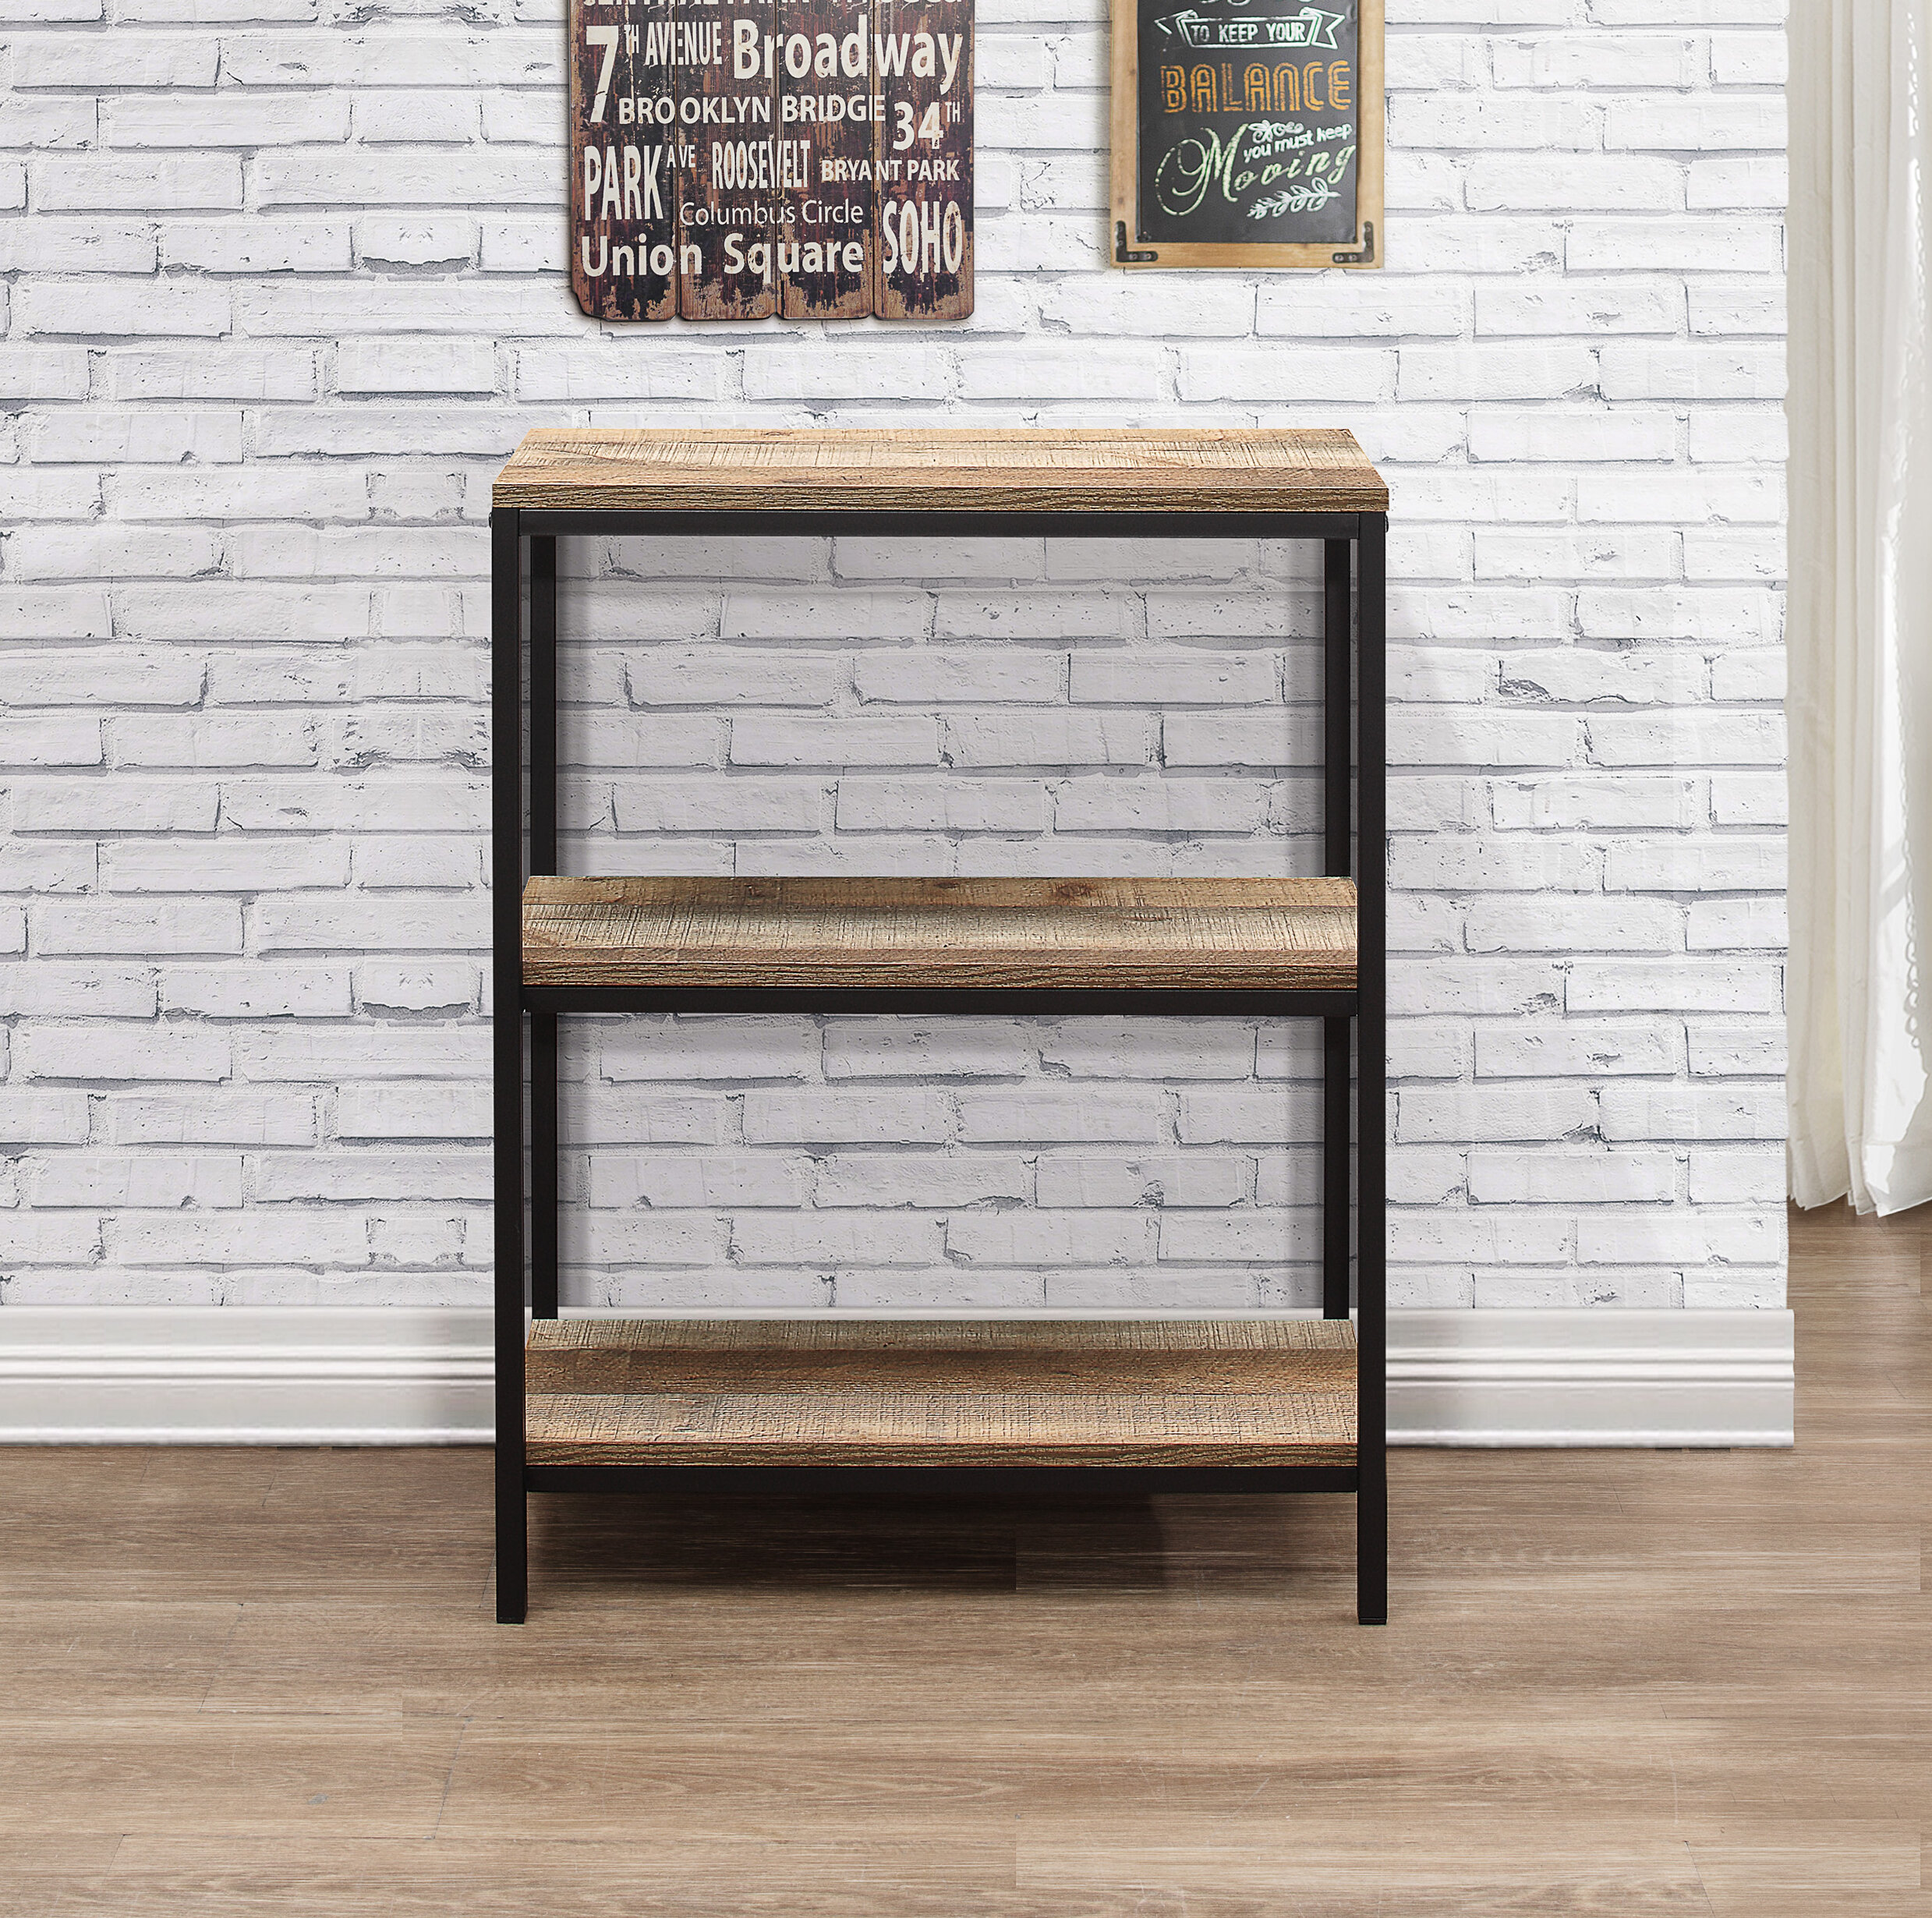 Williston Forge Bücherregal Amesbury & Bewertungen | Wayfair.de